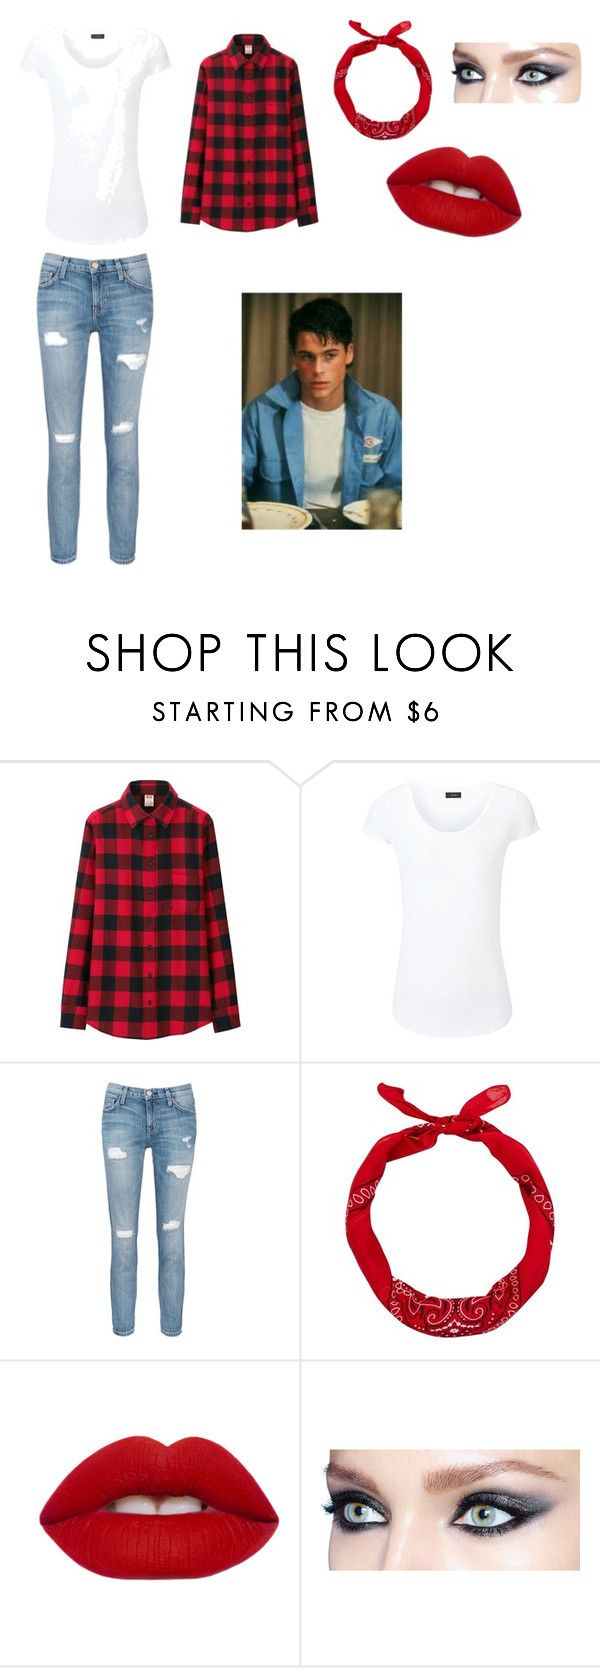 """""""Sodapop Curtis's girl"""" by alexis-makenzie-liscio on Polyvore featuring Uniqlo, Joseph, Current/Elliott and Lime Crime"""